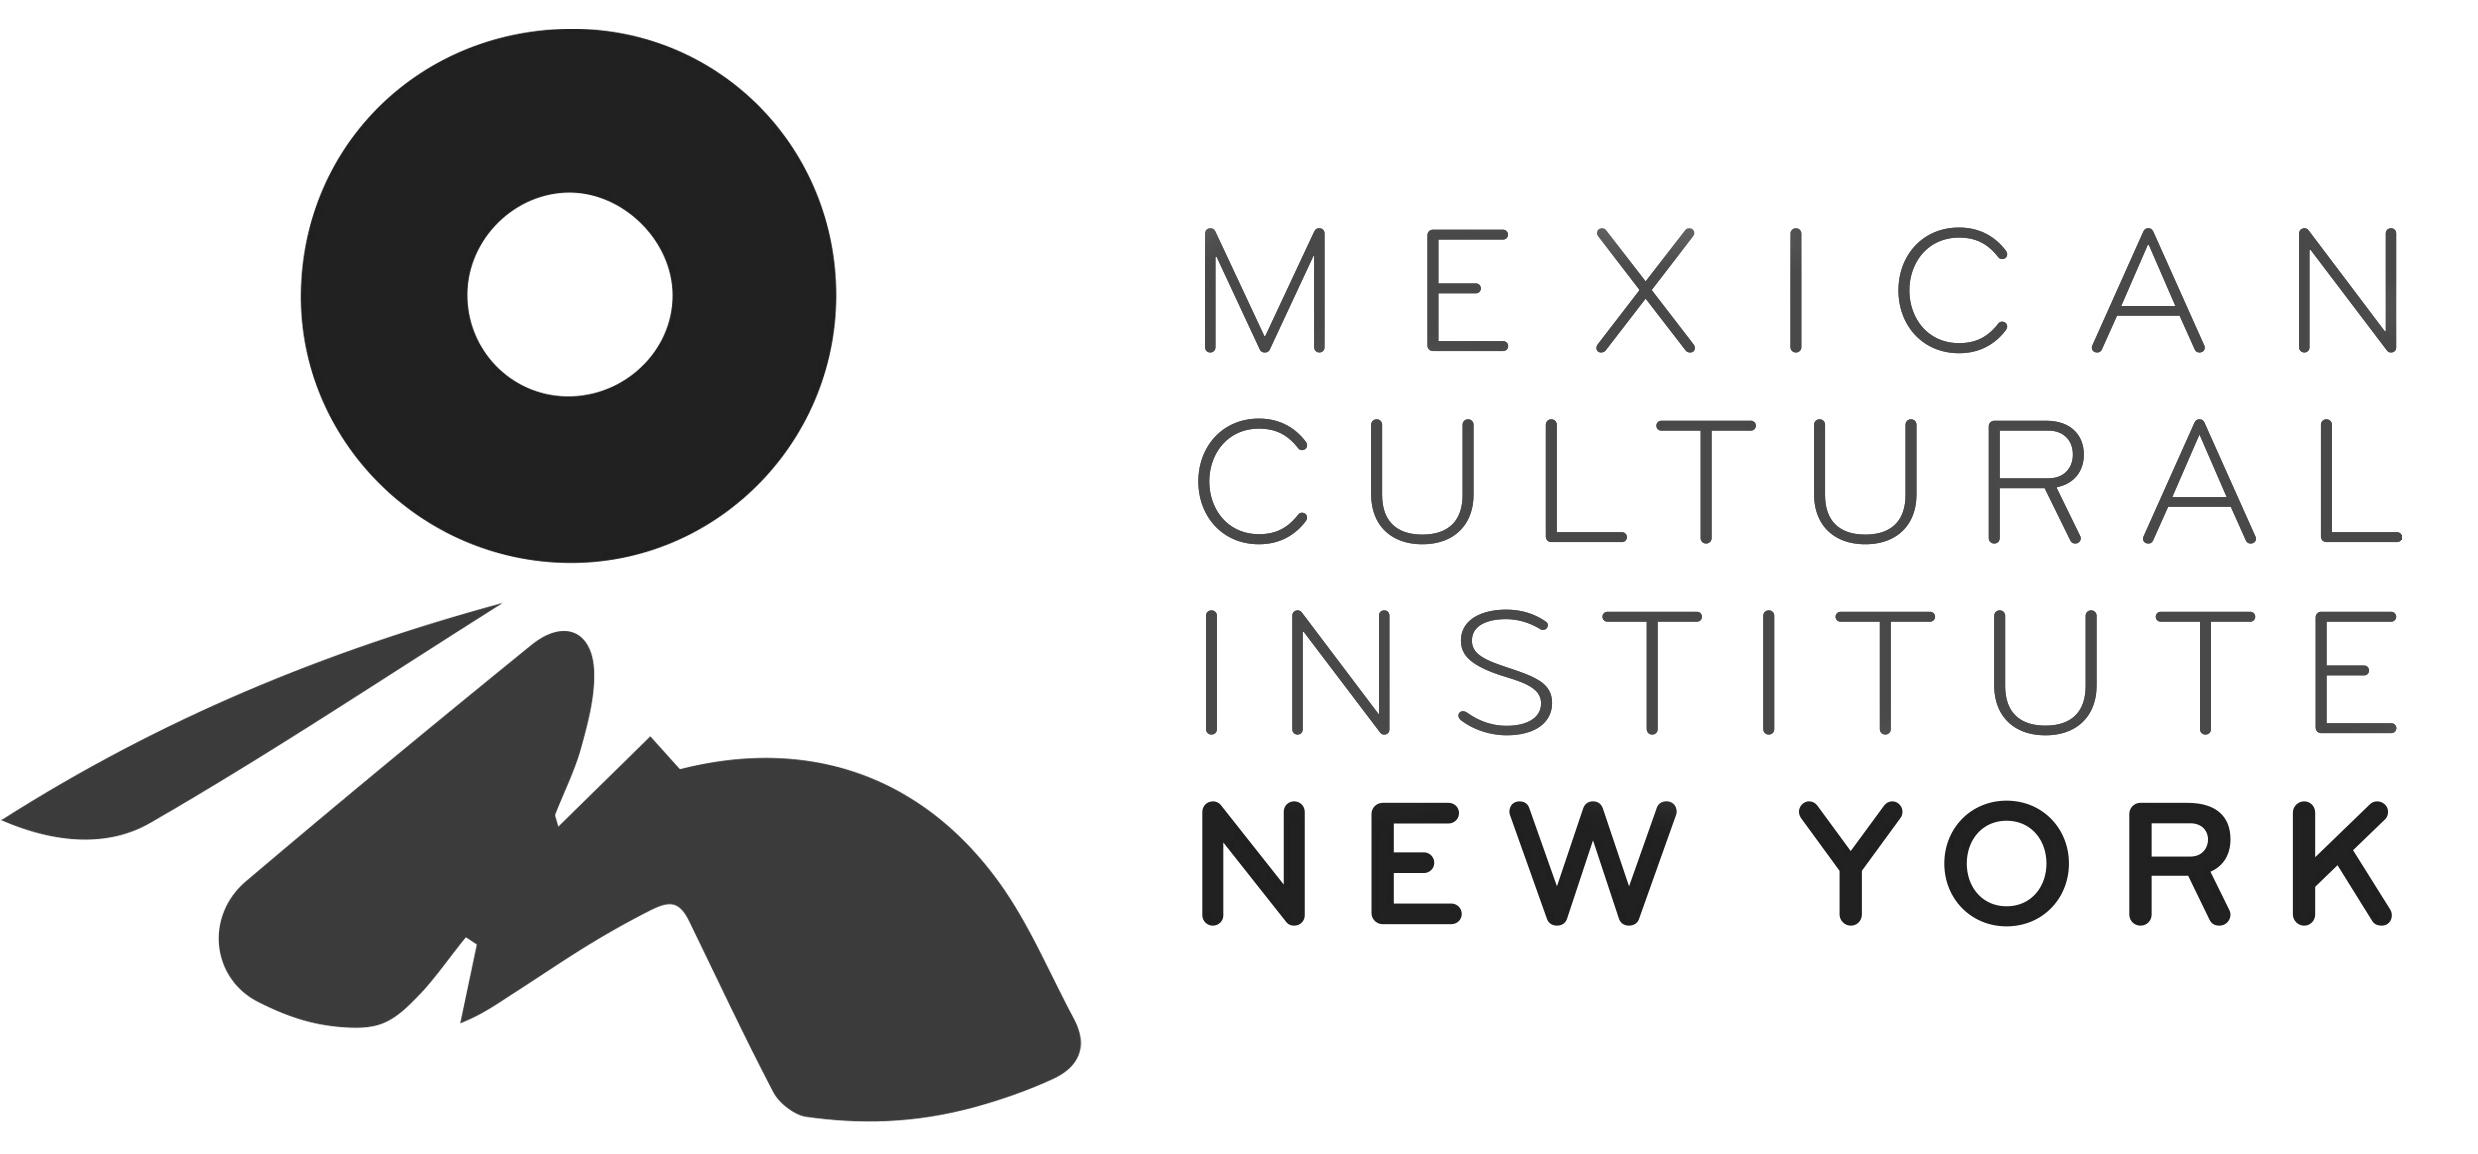 Mexican Cultural Institute New York